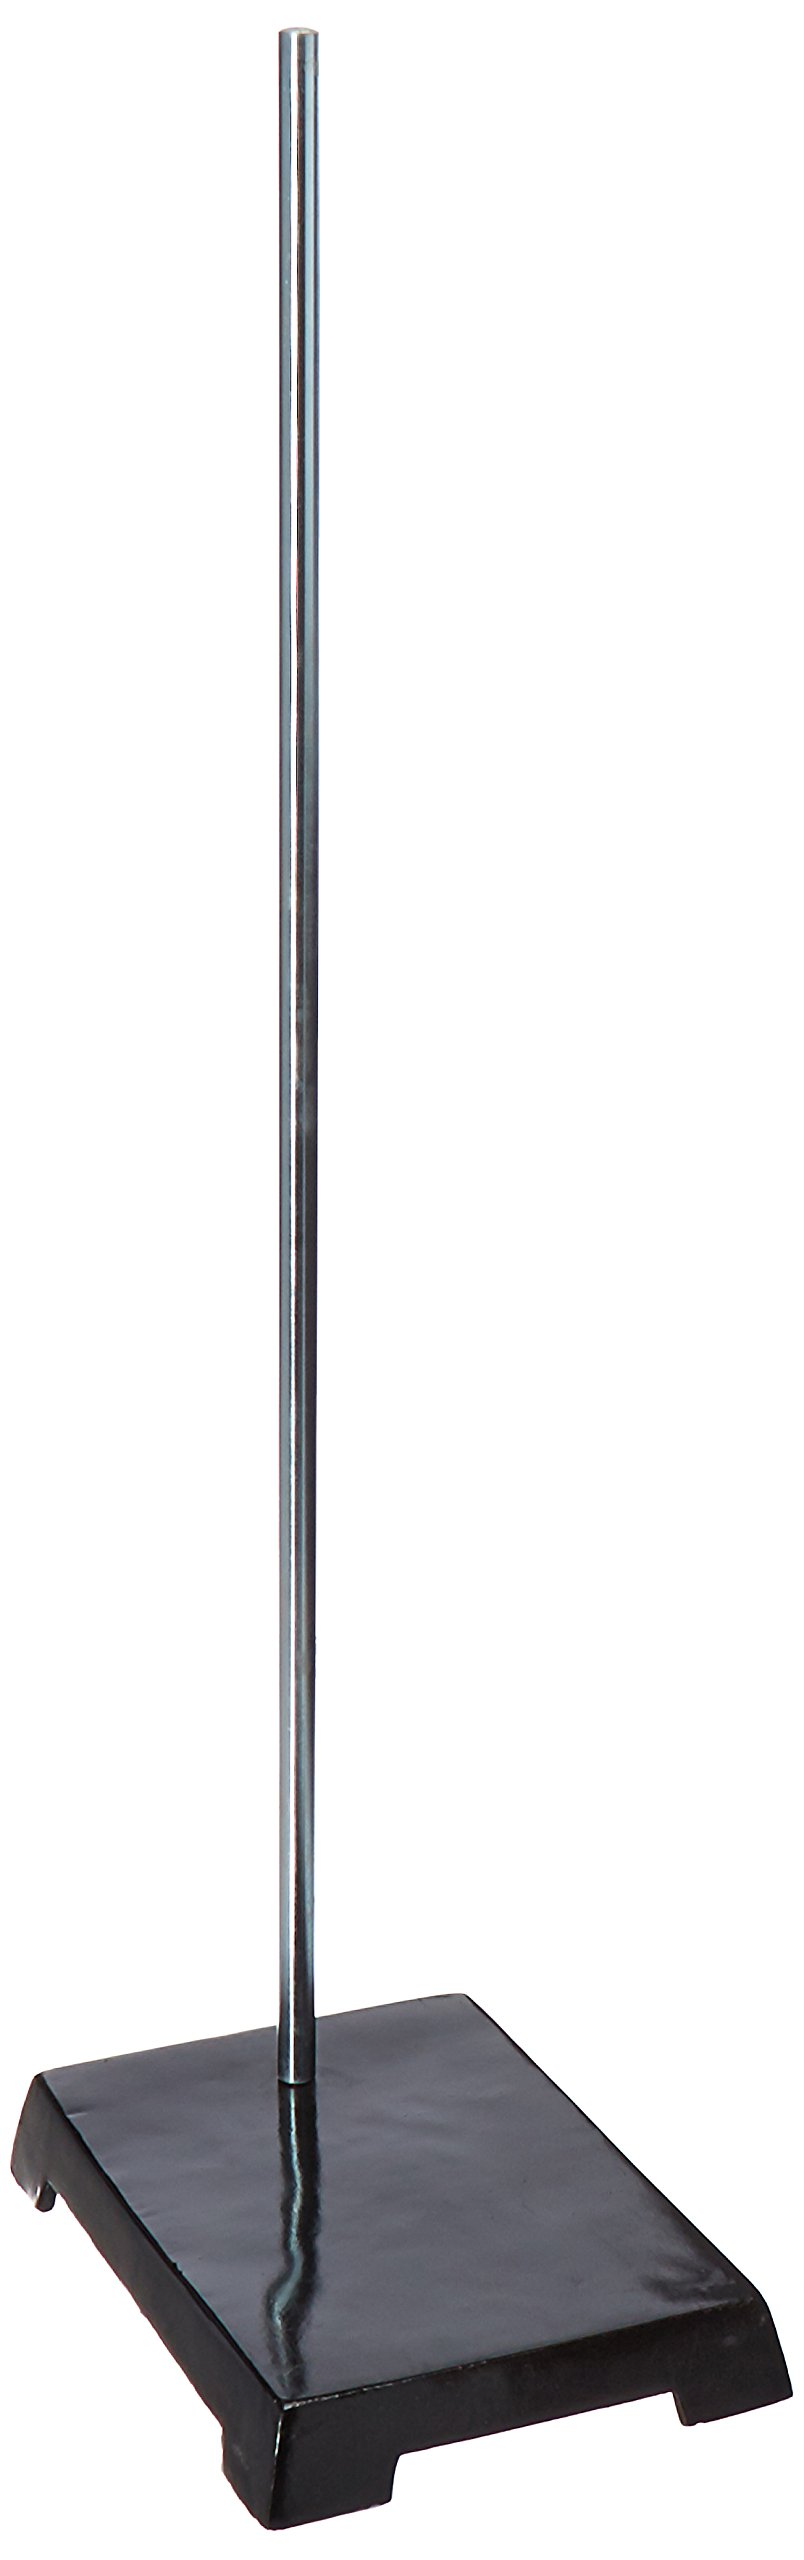 United Scientific SSB6X9-CI Support Stand with Cast Iron Base, 9'' Base Length x 6'' Base Width by United Scientific Supplies